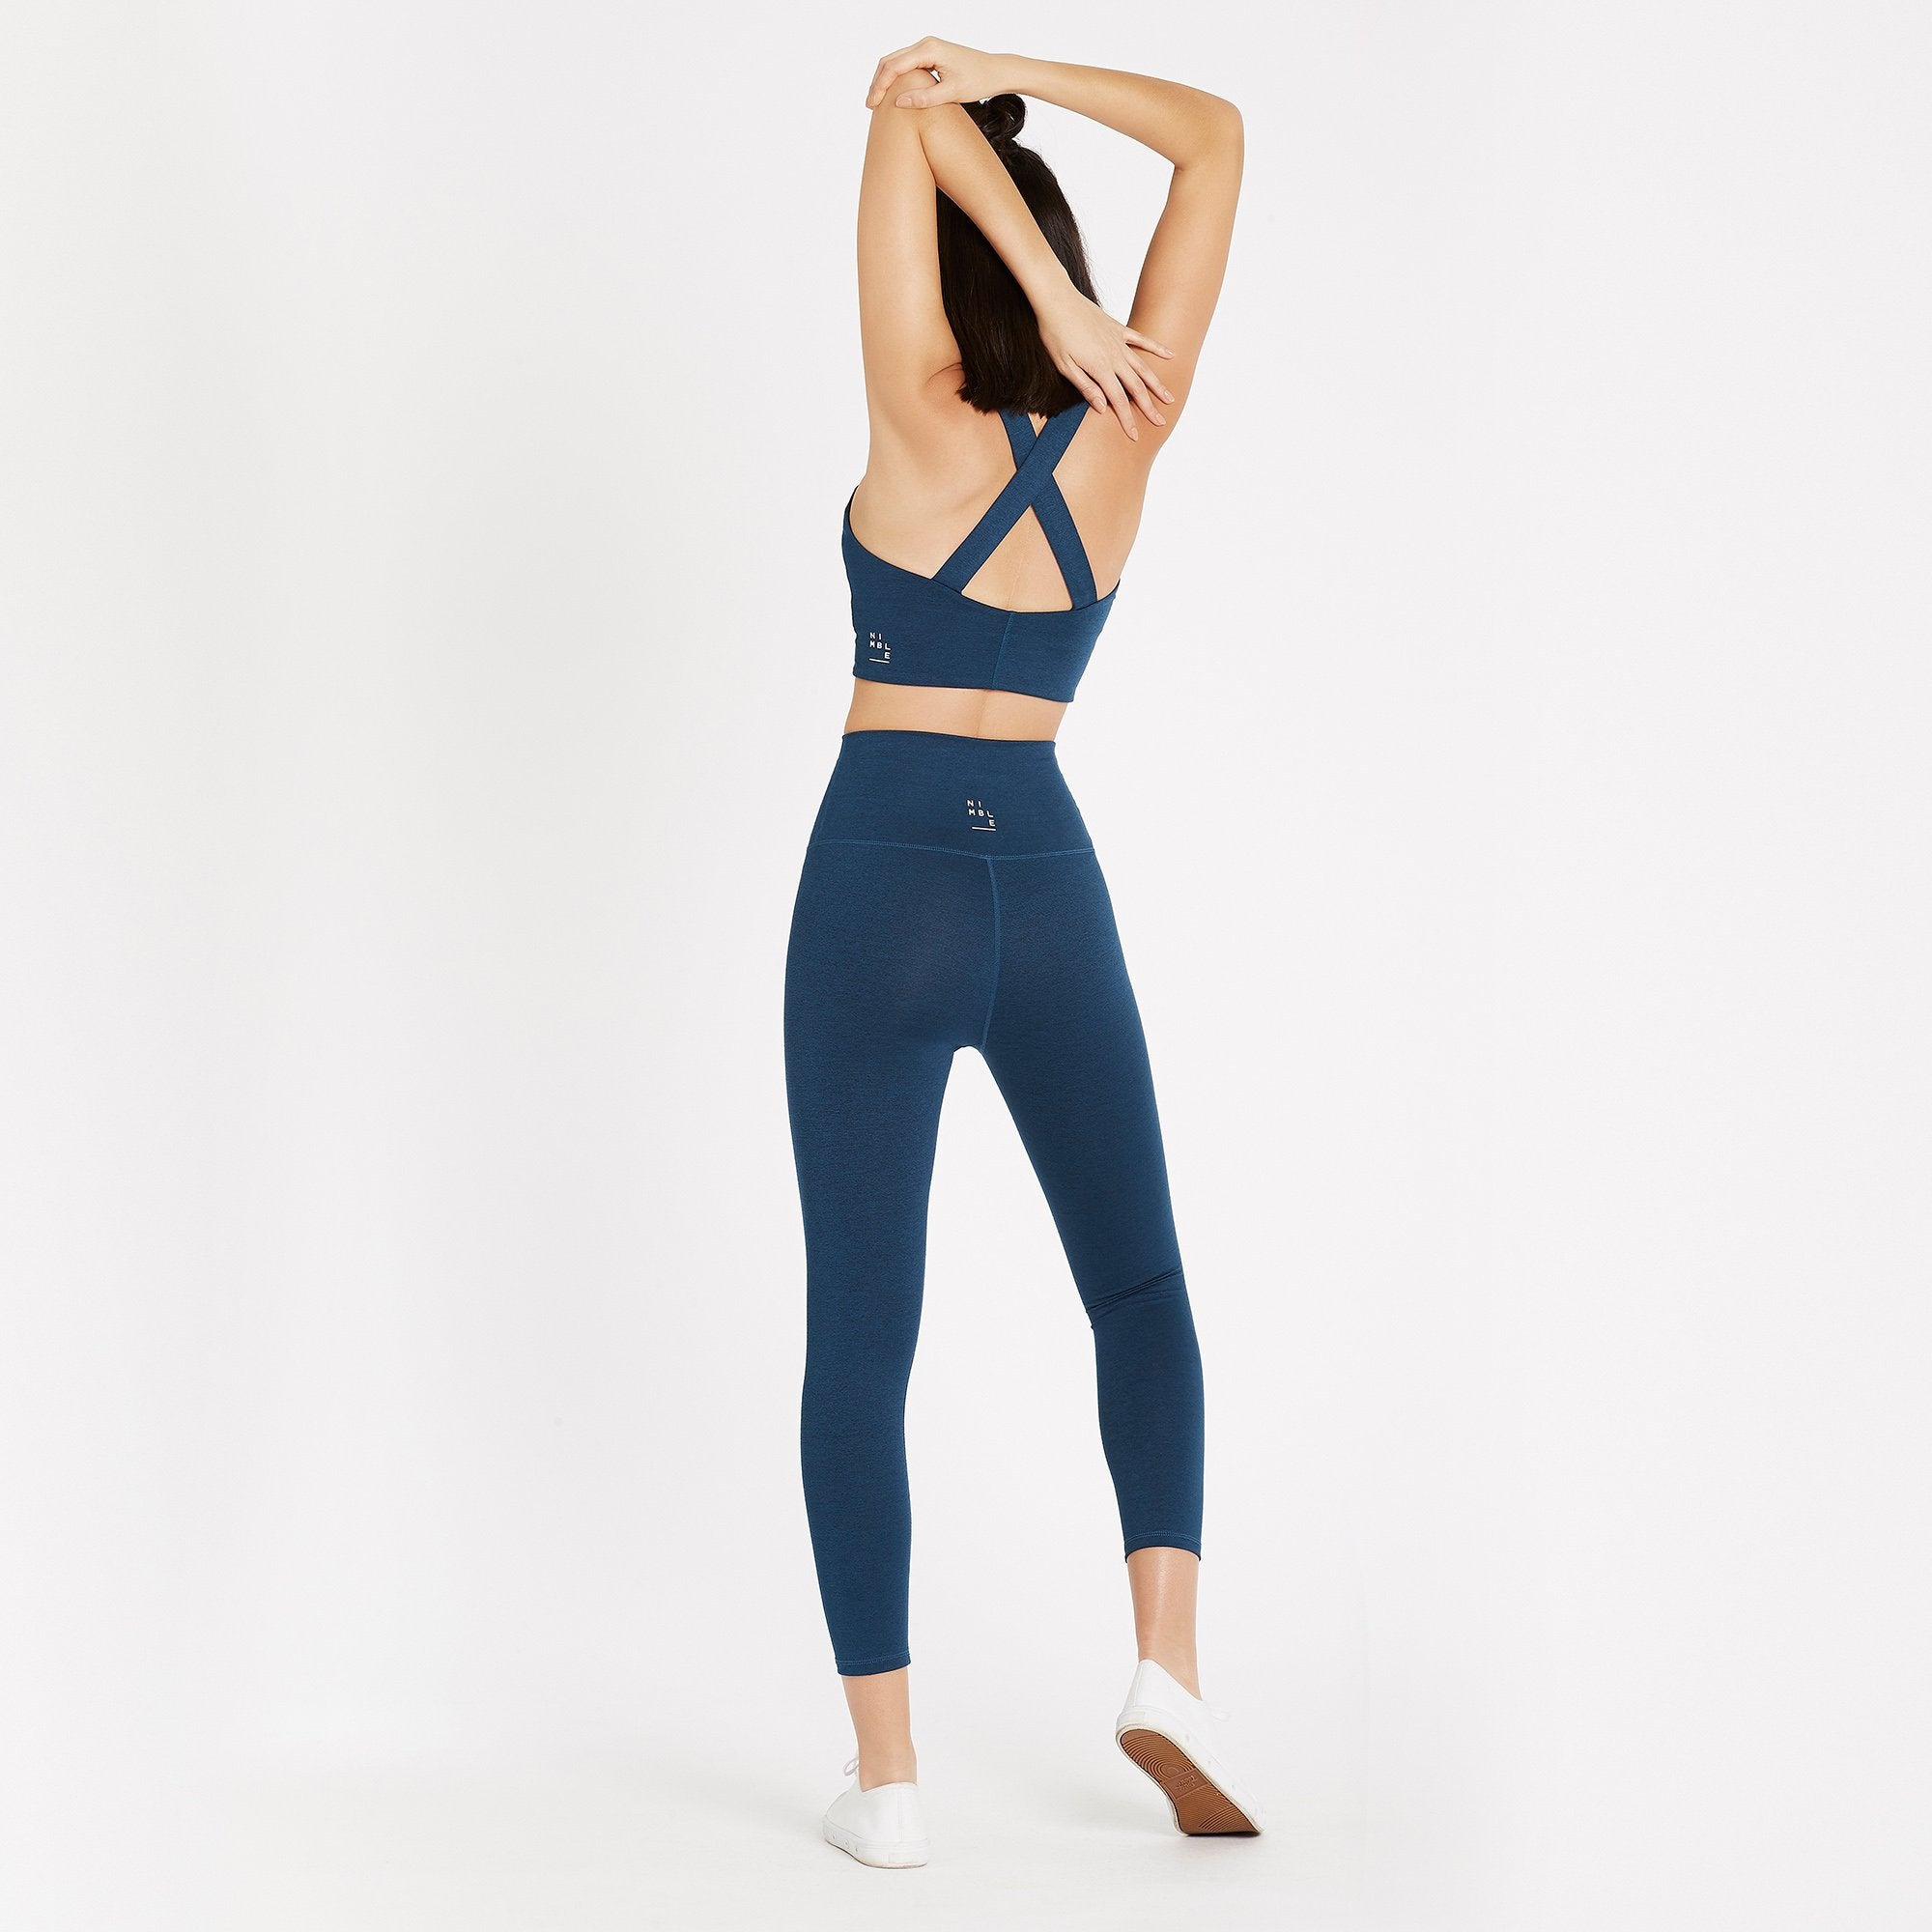 Nimble Activewear Activewear Nimble Activewear | Studio Cross Back Bra - Blue Depths